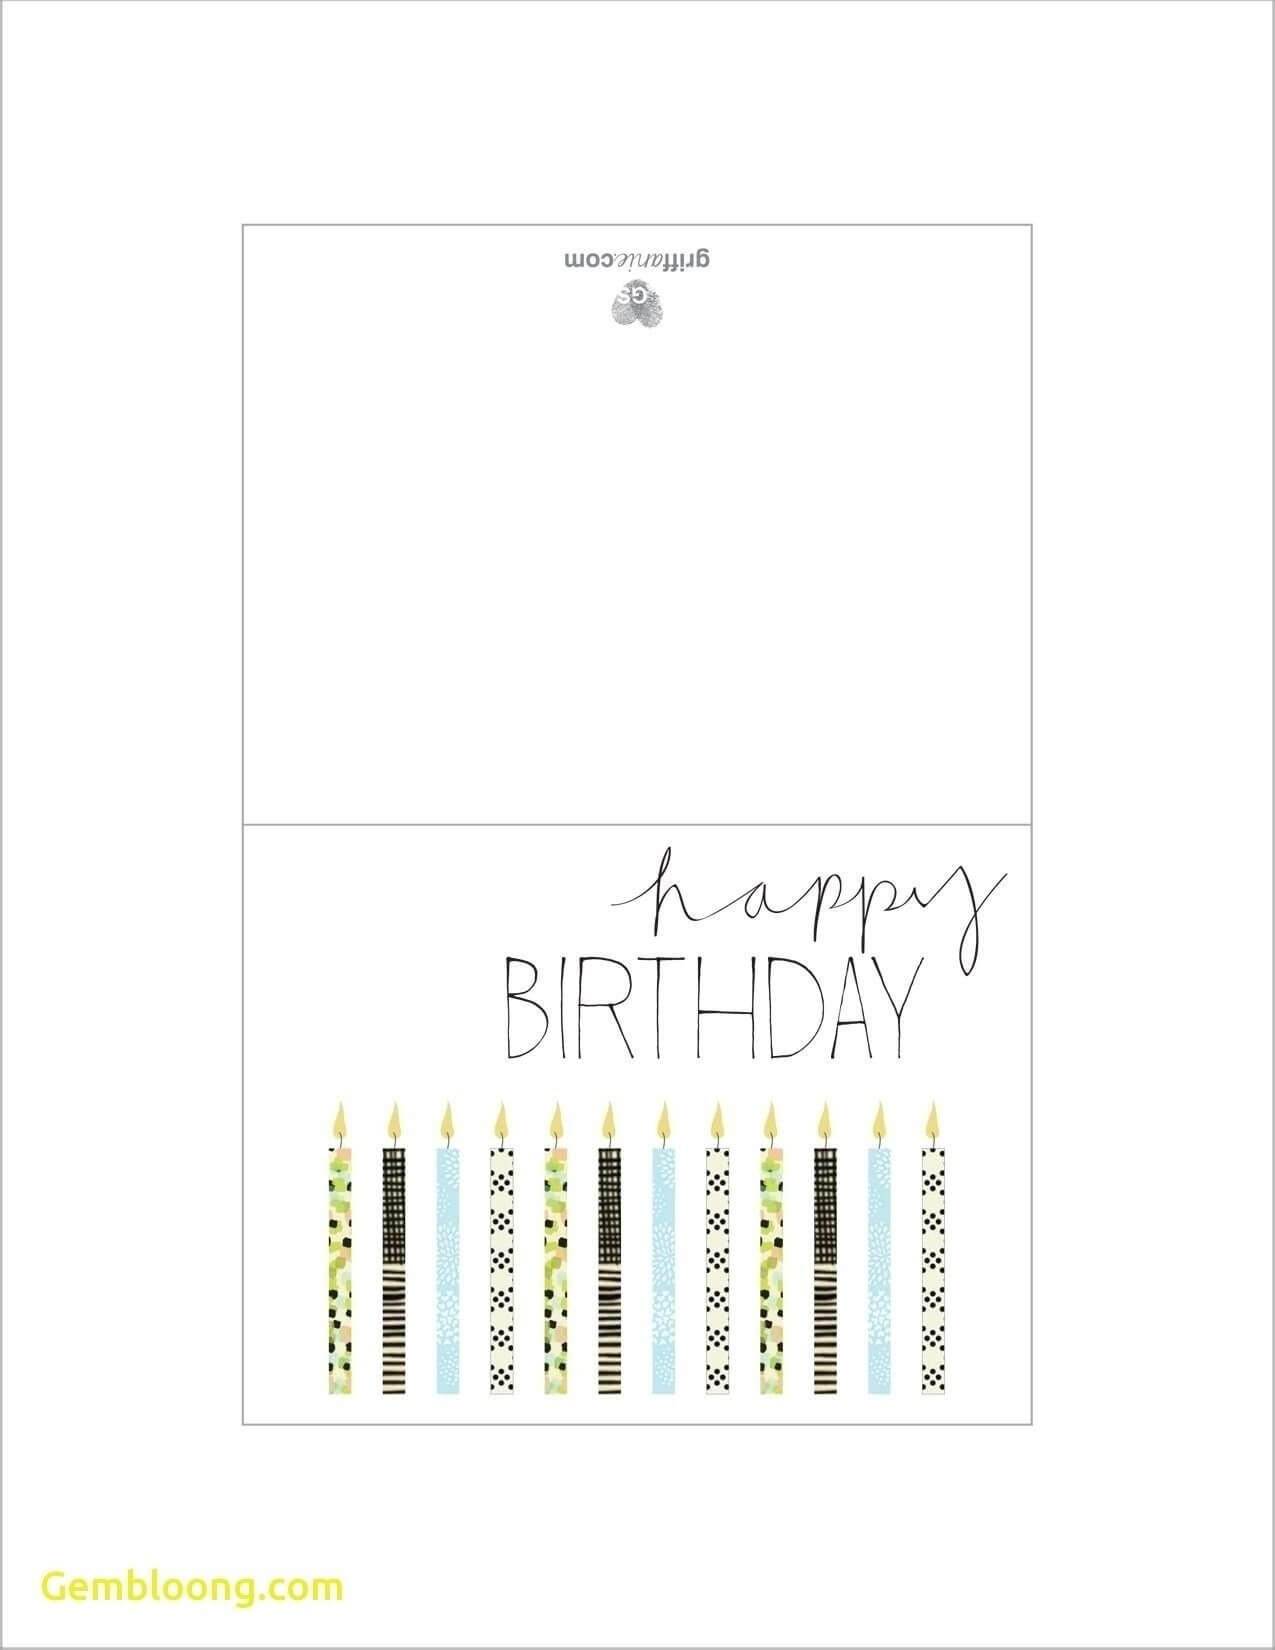 012 Printable Birthday Card Template Ideas Cards Foldable With Foldable Birthday Card Template